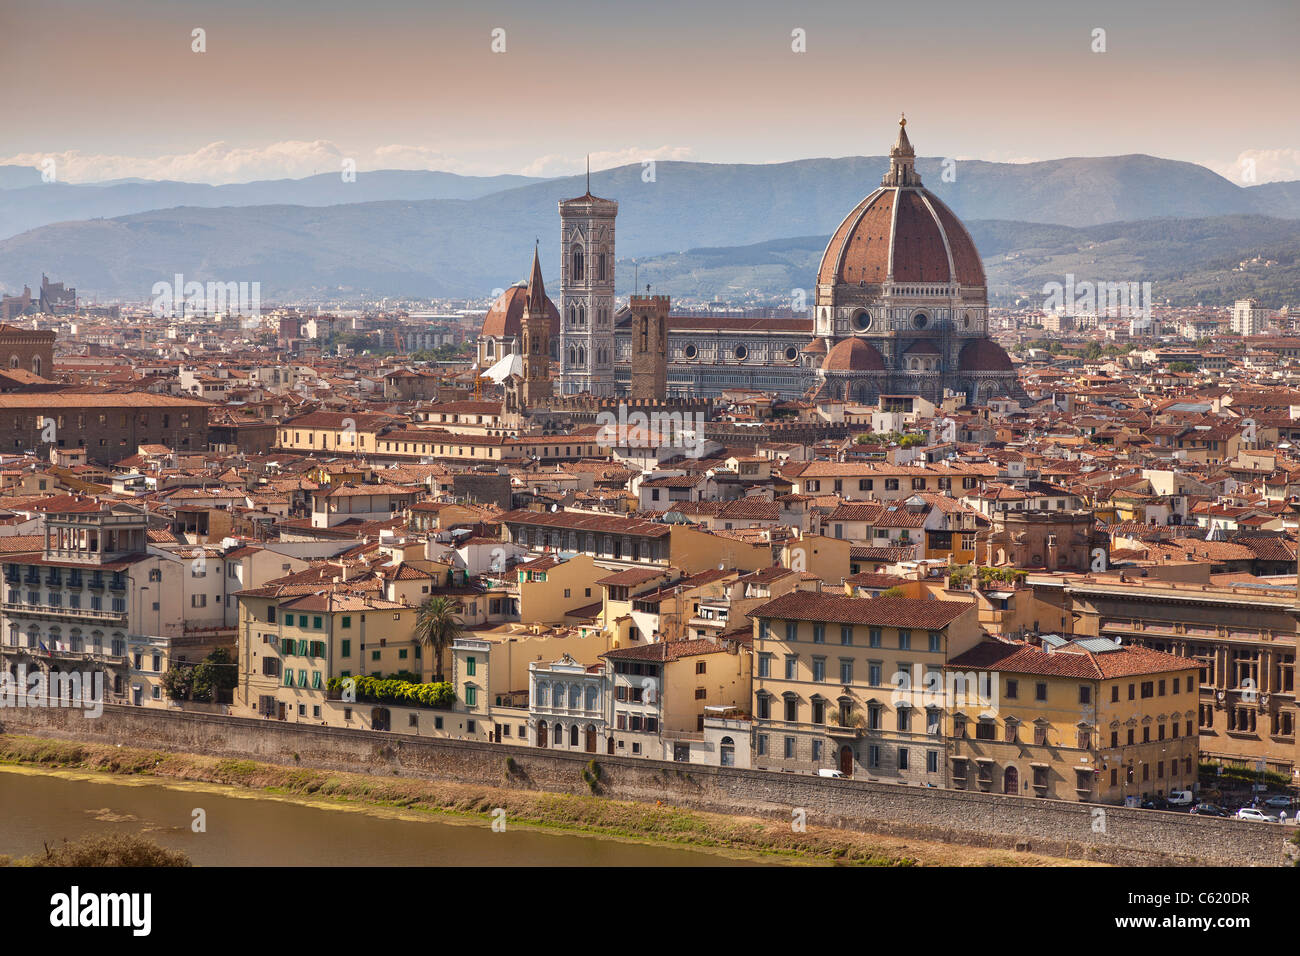 Florence, Italy, late afternoon sunlight, Centrally placed is the Duomo, The Basilica di Santa Maria del Fiore Stock Photo